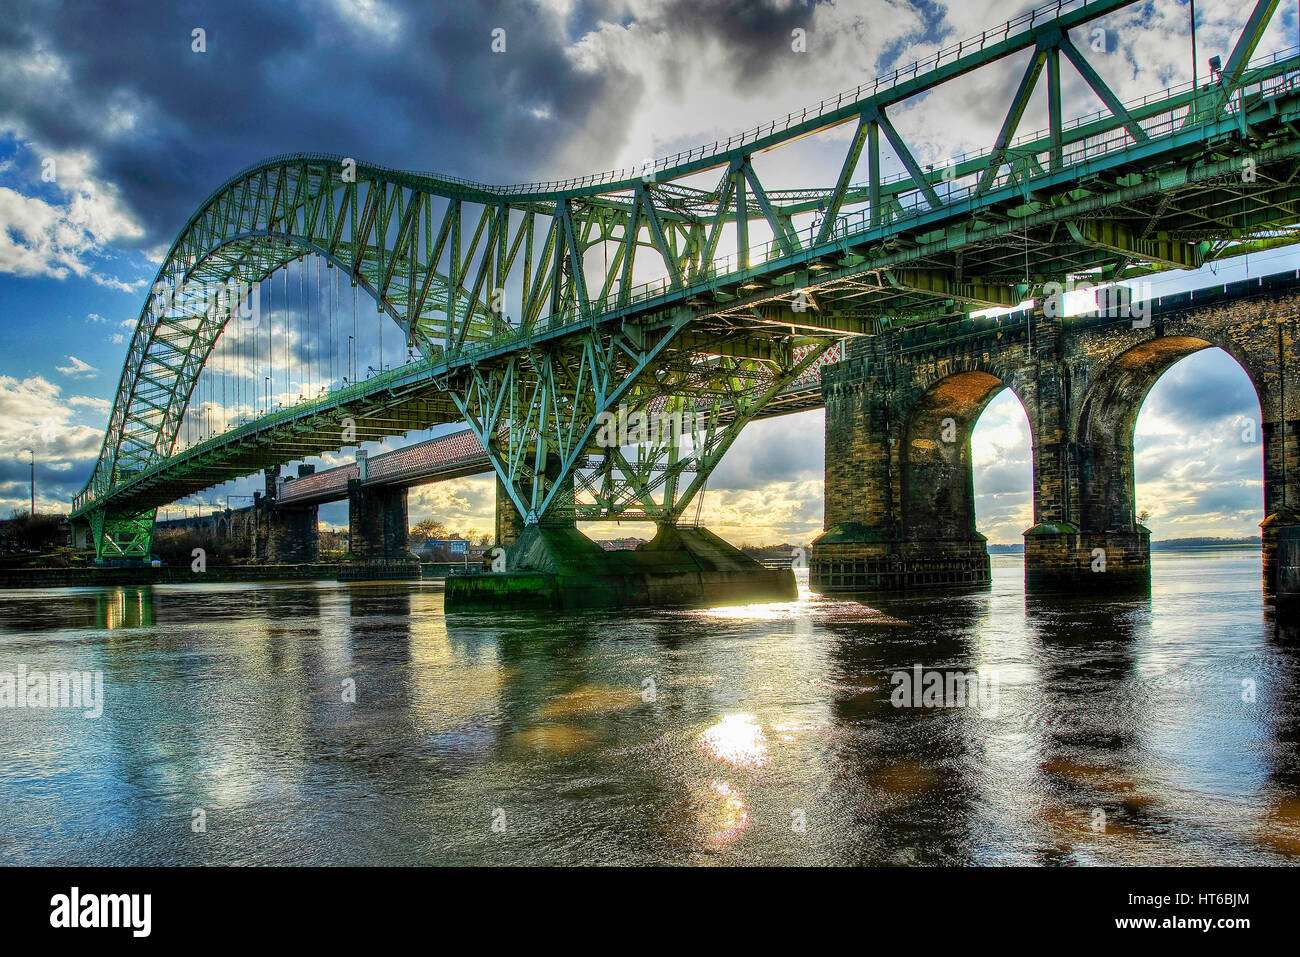 The Queensway bridge over the river Mersey and Manchester ship canal between Widnes and Runcorn. - Stock Image